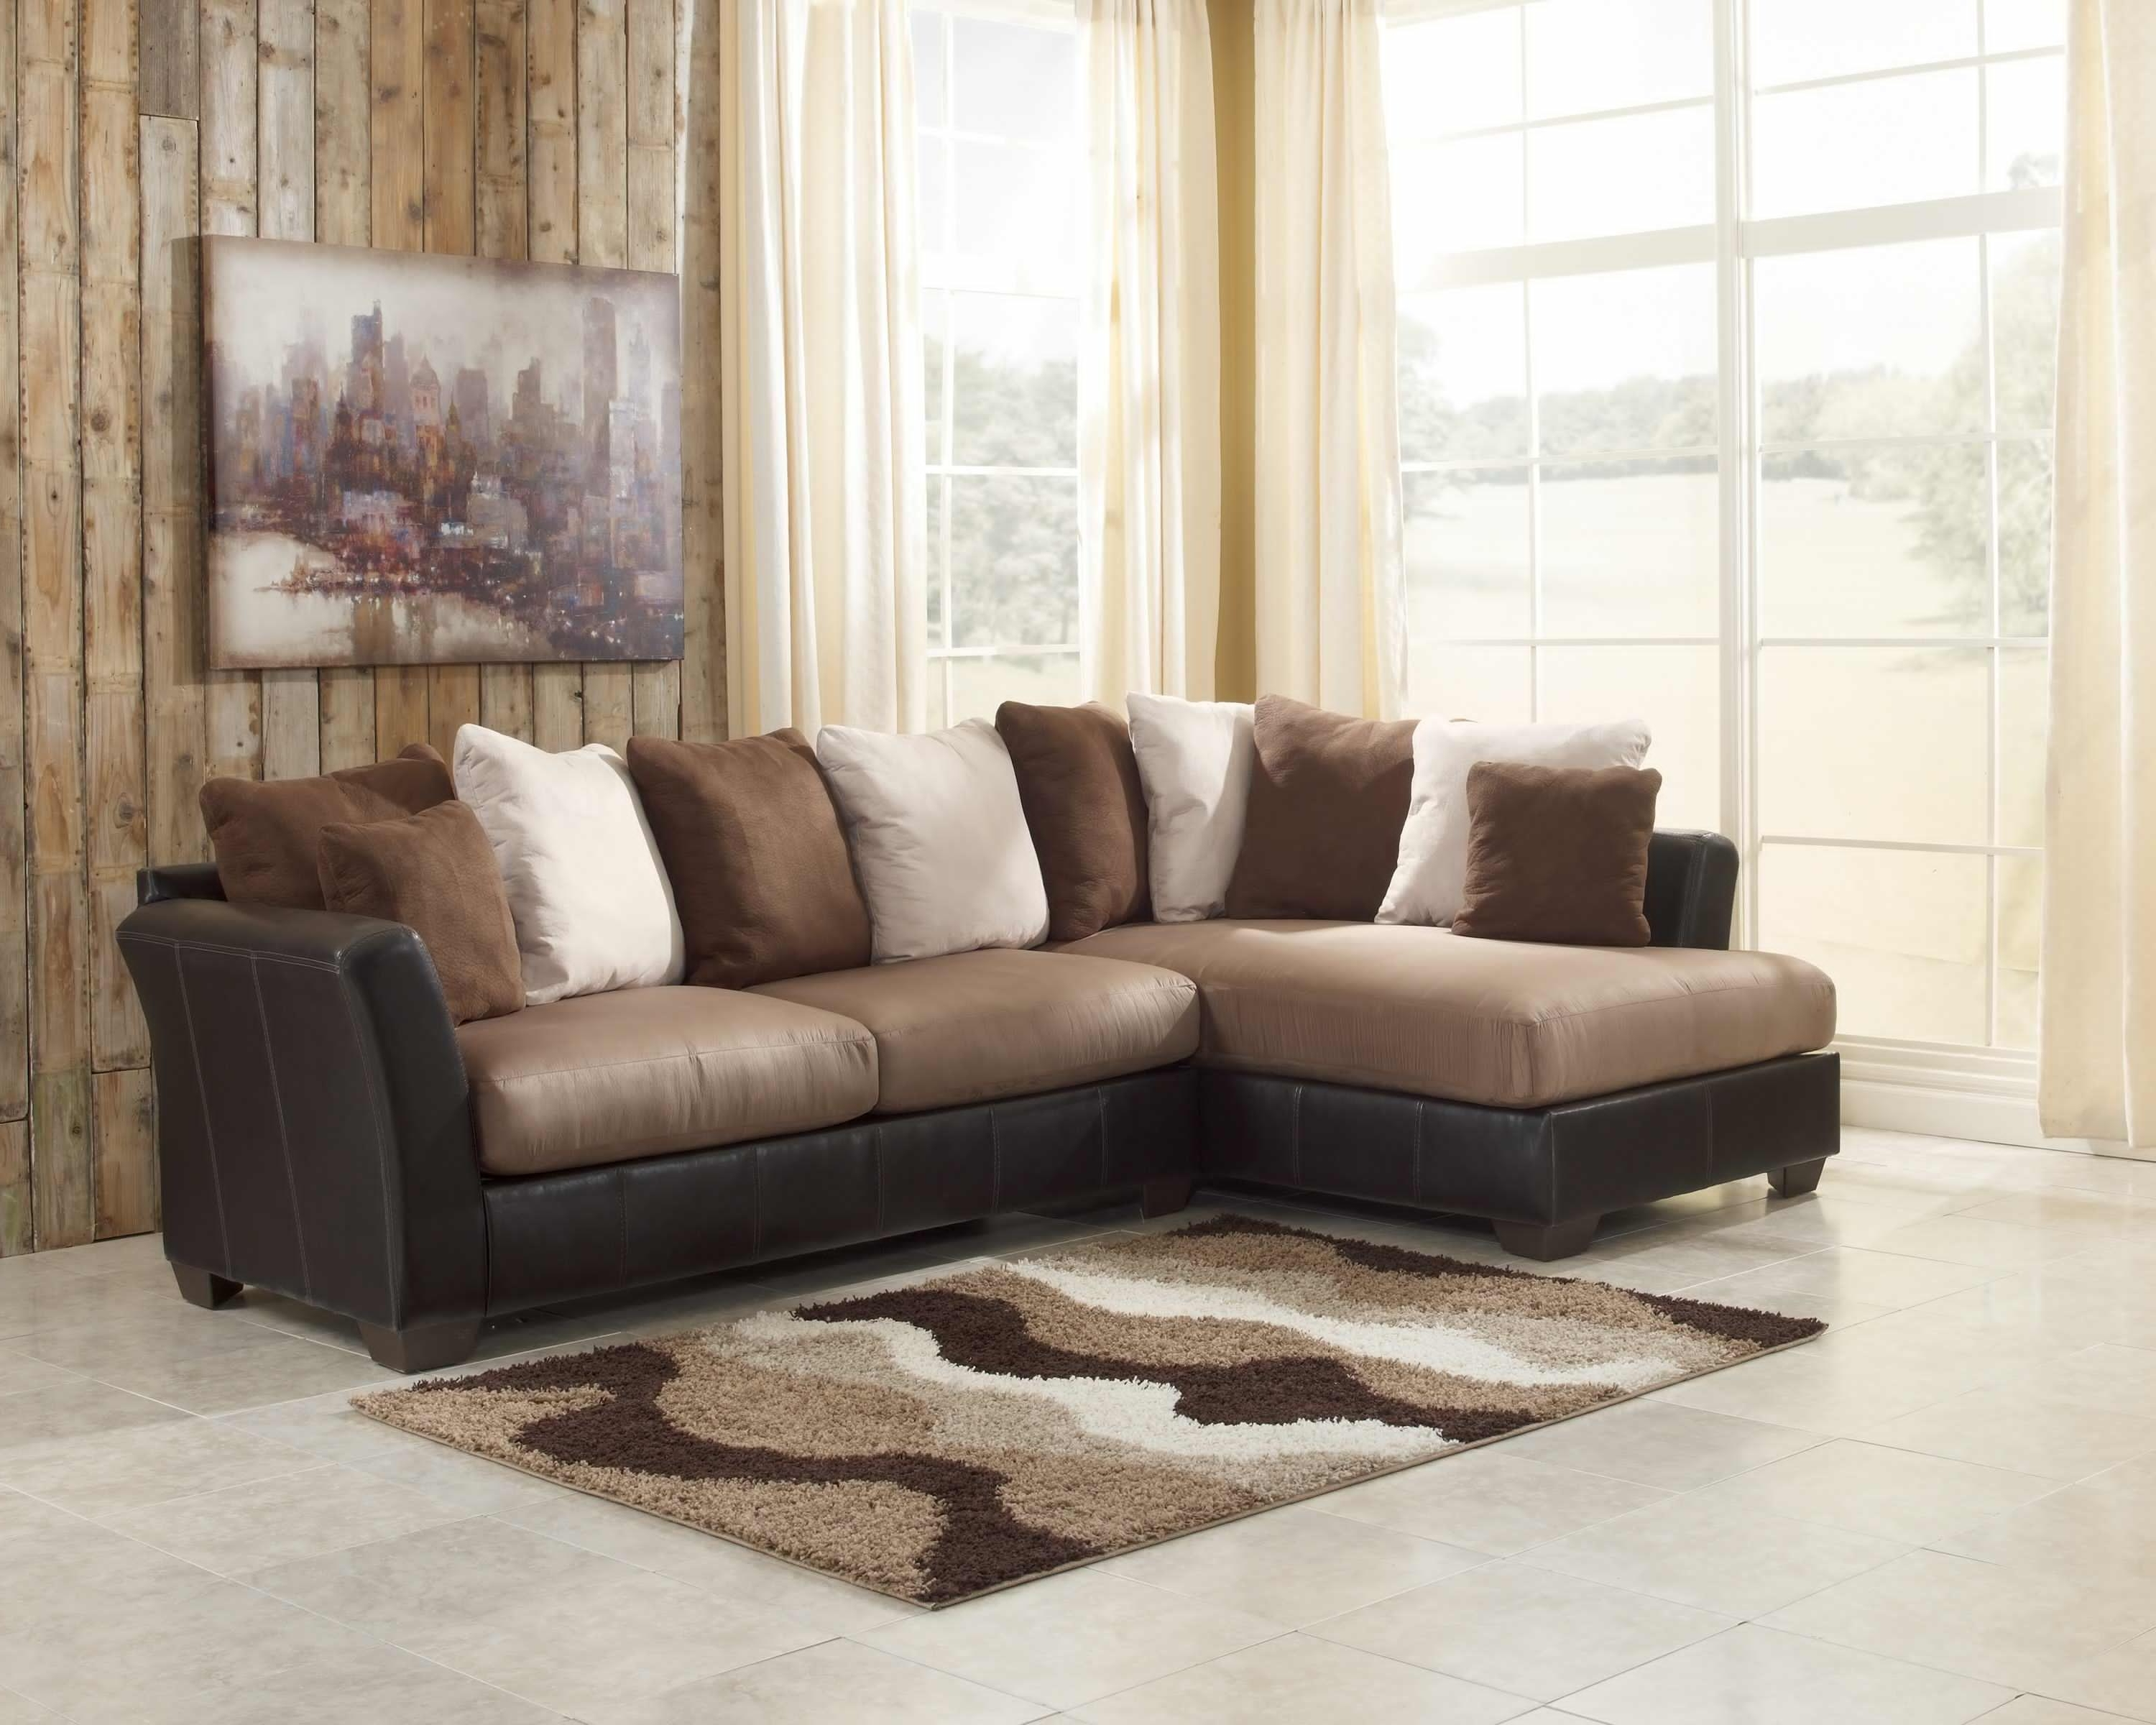 Best And Newest Sectional Sofa Design: Two Piece Sectional Sofa Chaise Leather Regarding 2 Piece Sectional Sofas With Chaise (View 6 of 15)